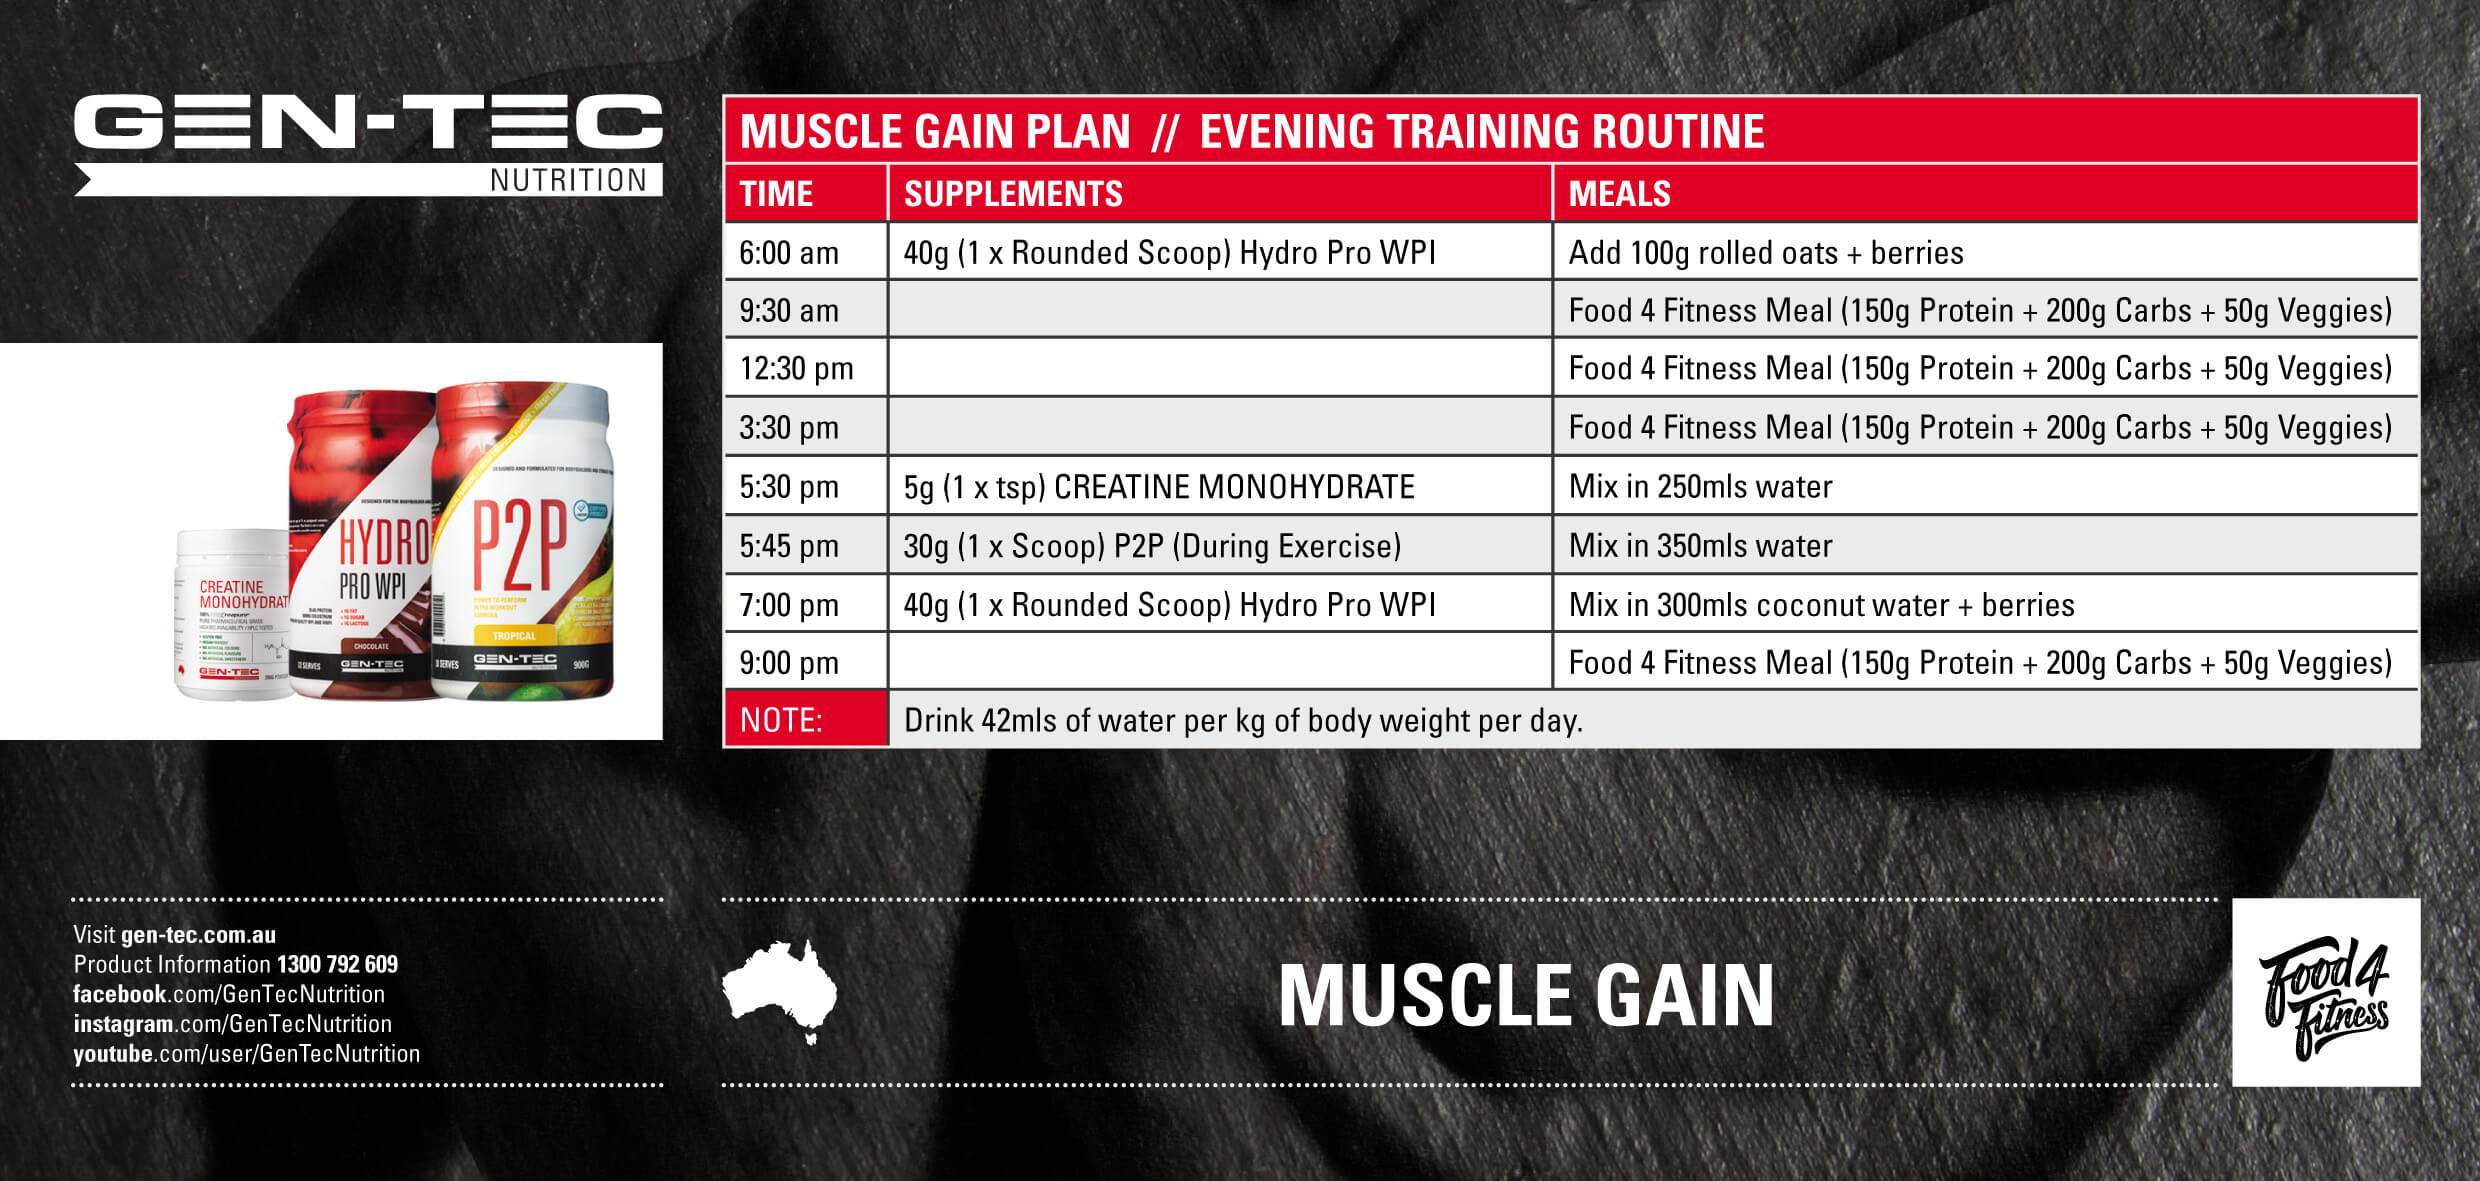 Muscle Gain Evening Training